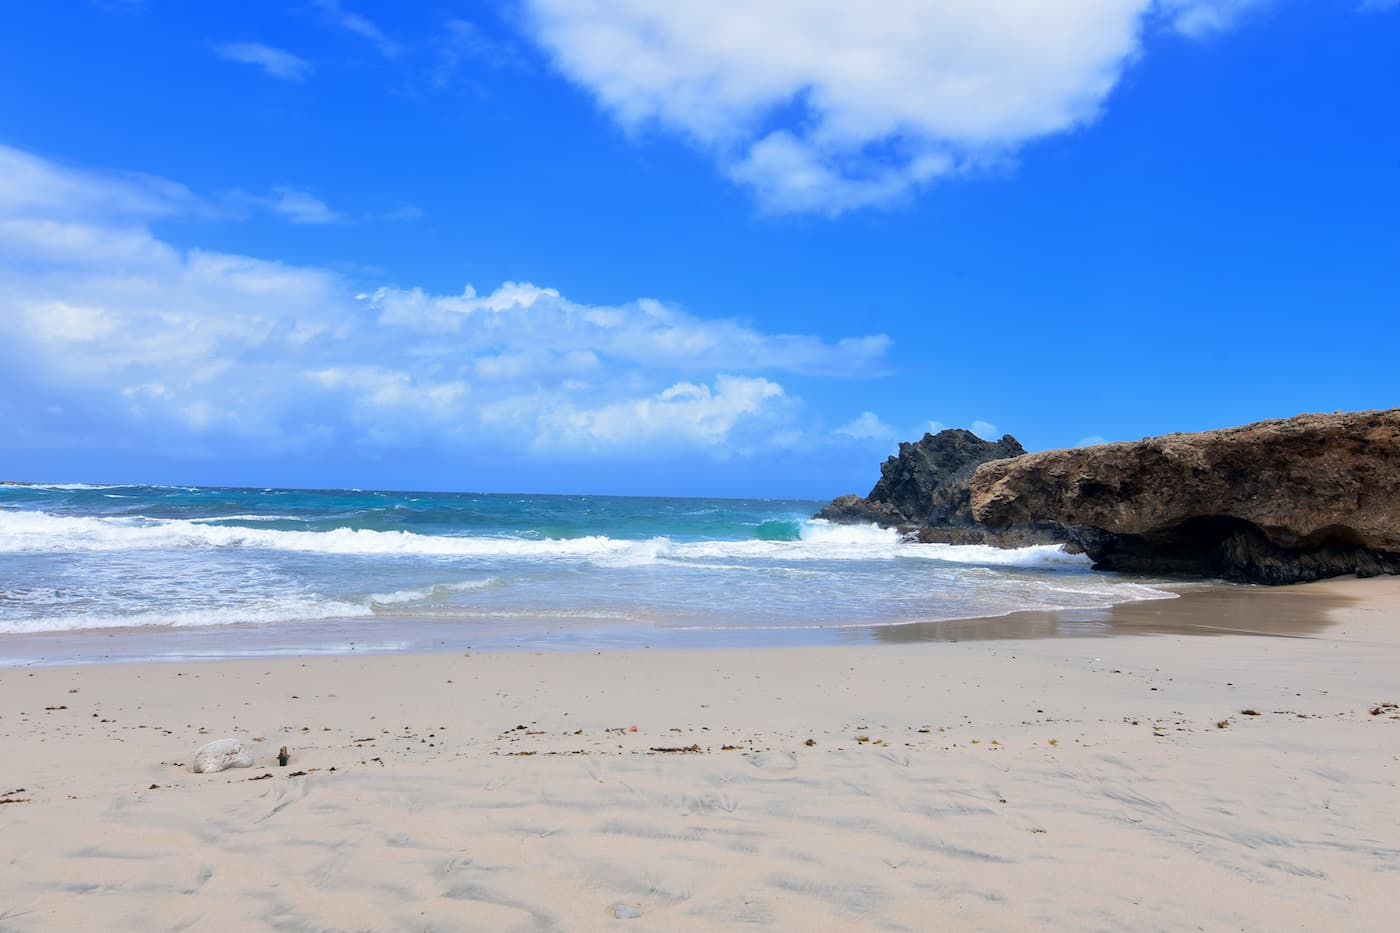 Andicuri Beach, Aruba. It's a natural beauty, but can be wild! Soft sand, a few rocks and beautiful water. Not to be missed!